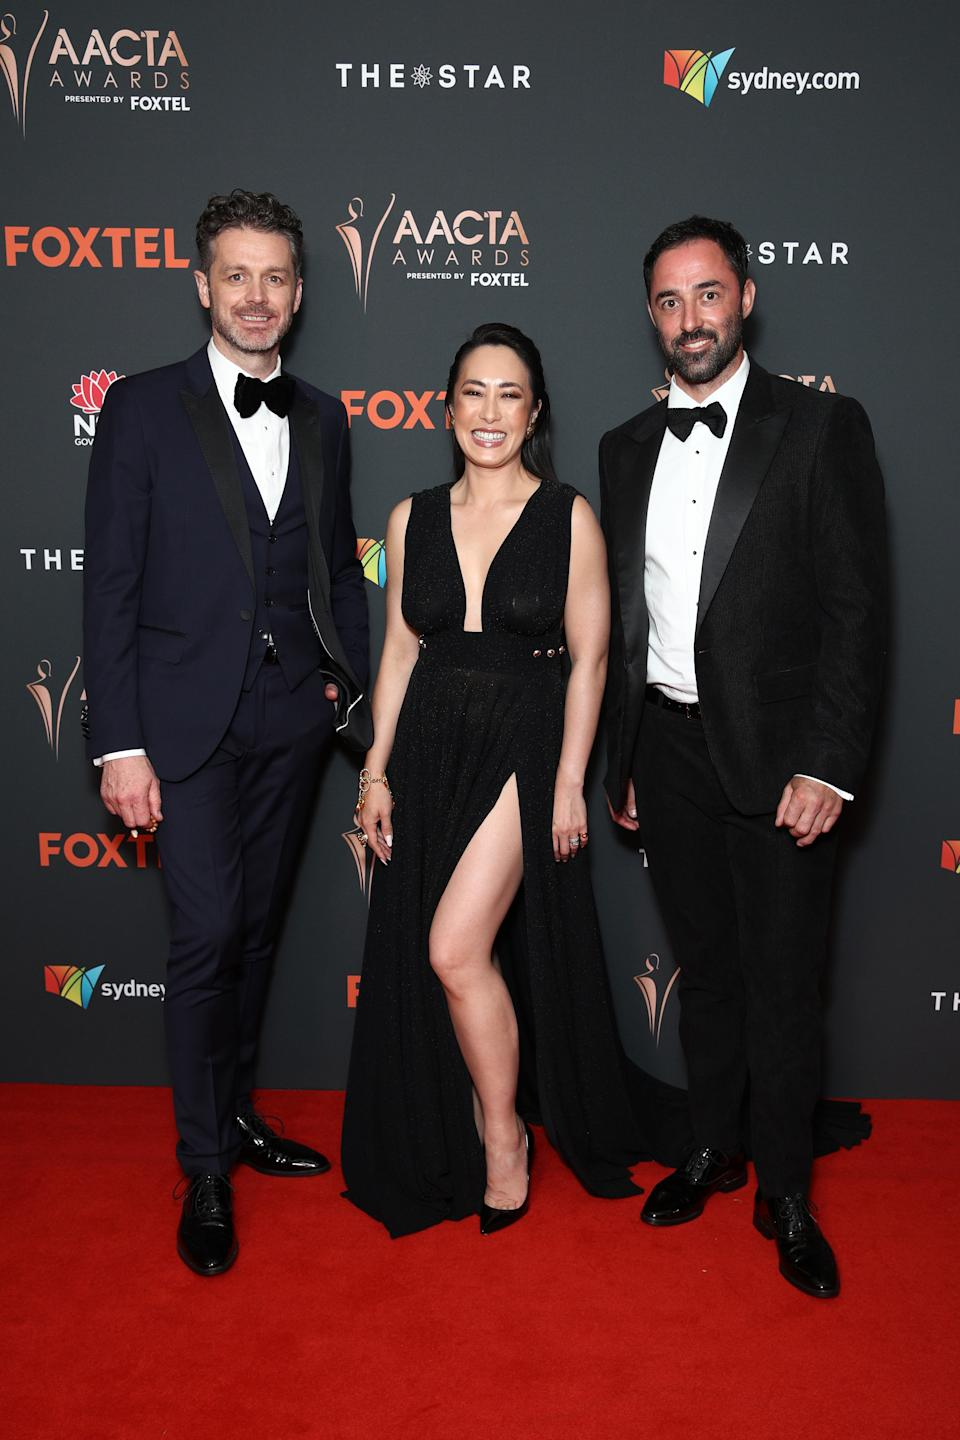 Jock Zonfrillo, Melissa Leong and Andy Allen  arrives ahead of the 2020 AACTA Awards presented by Foxtel at The Star on November 30, 2020